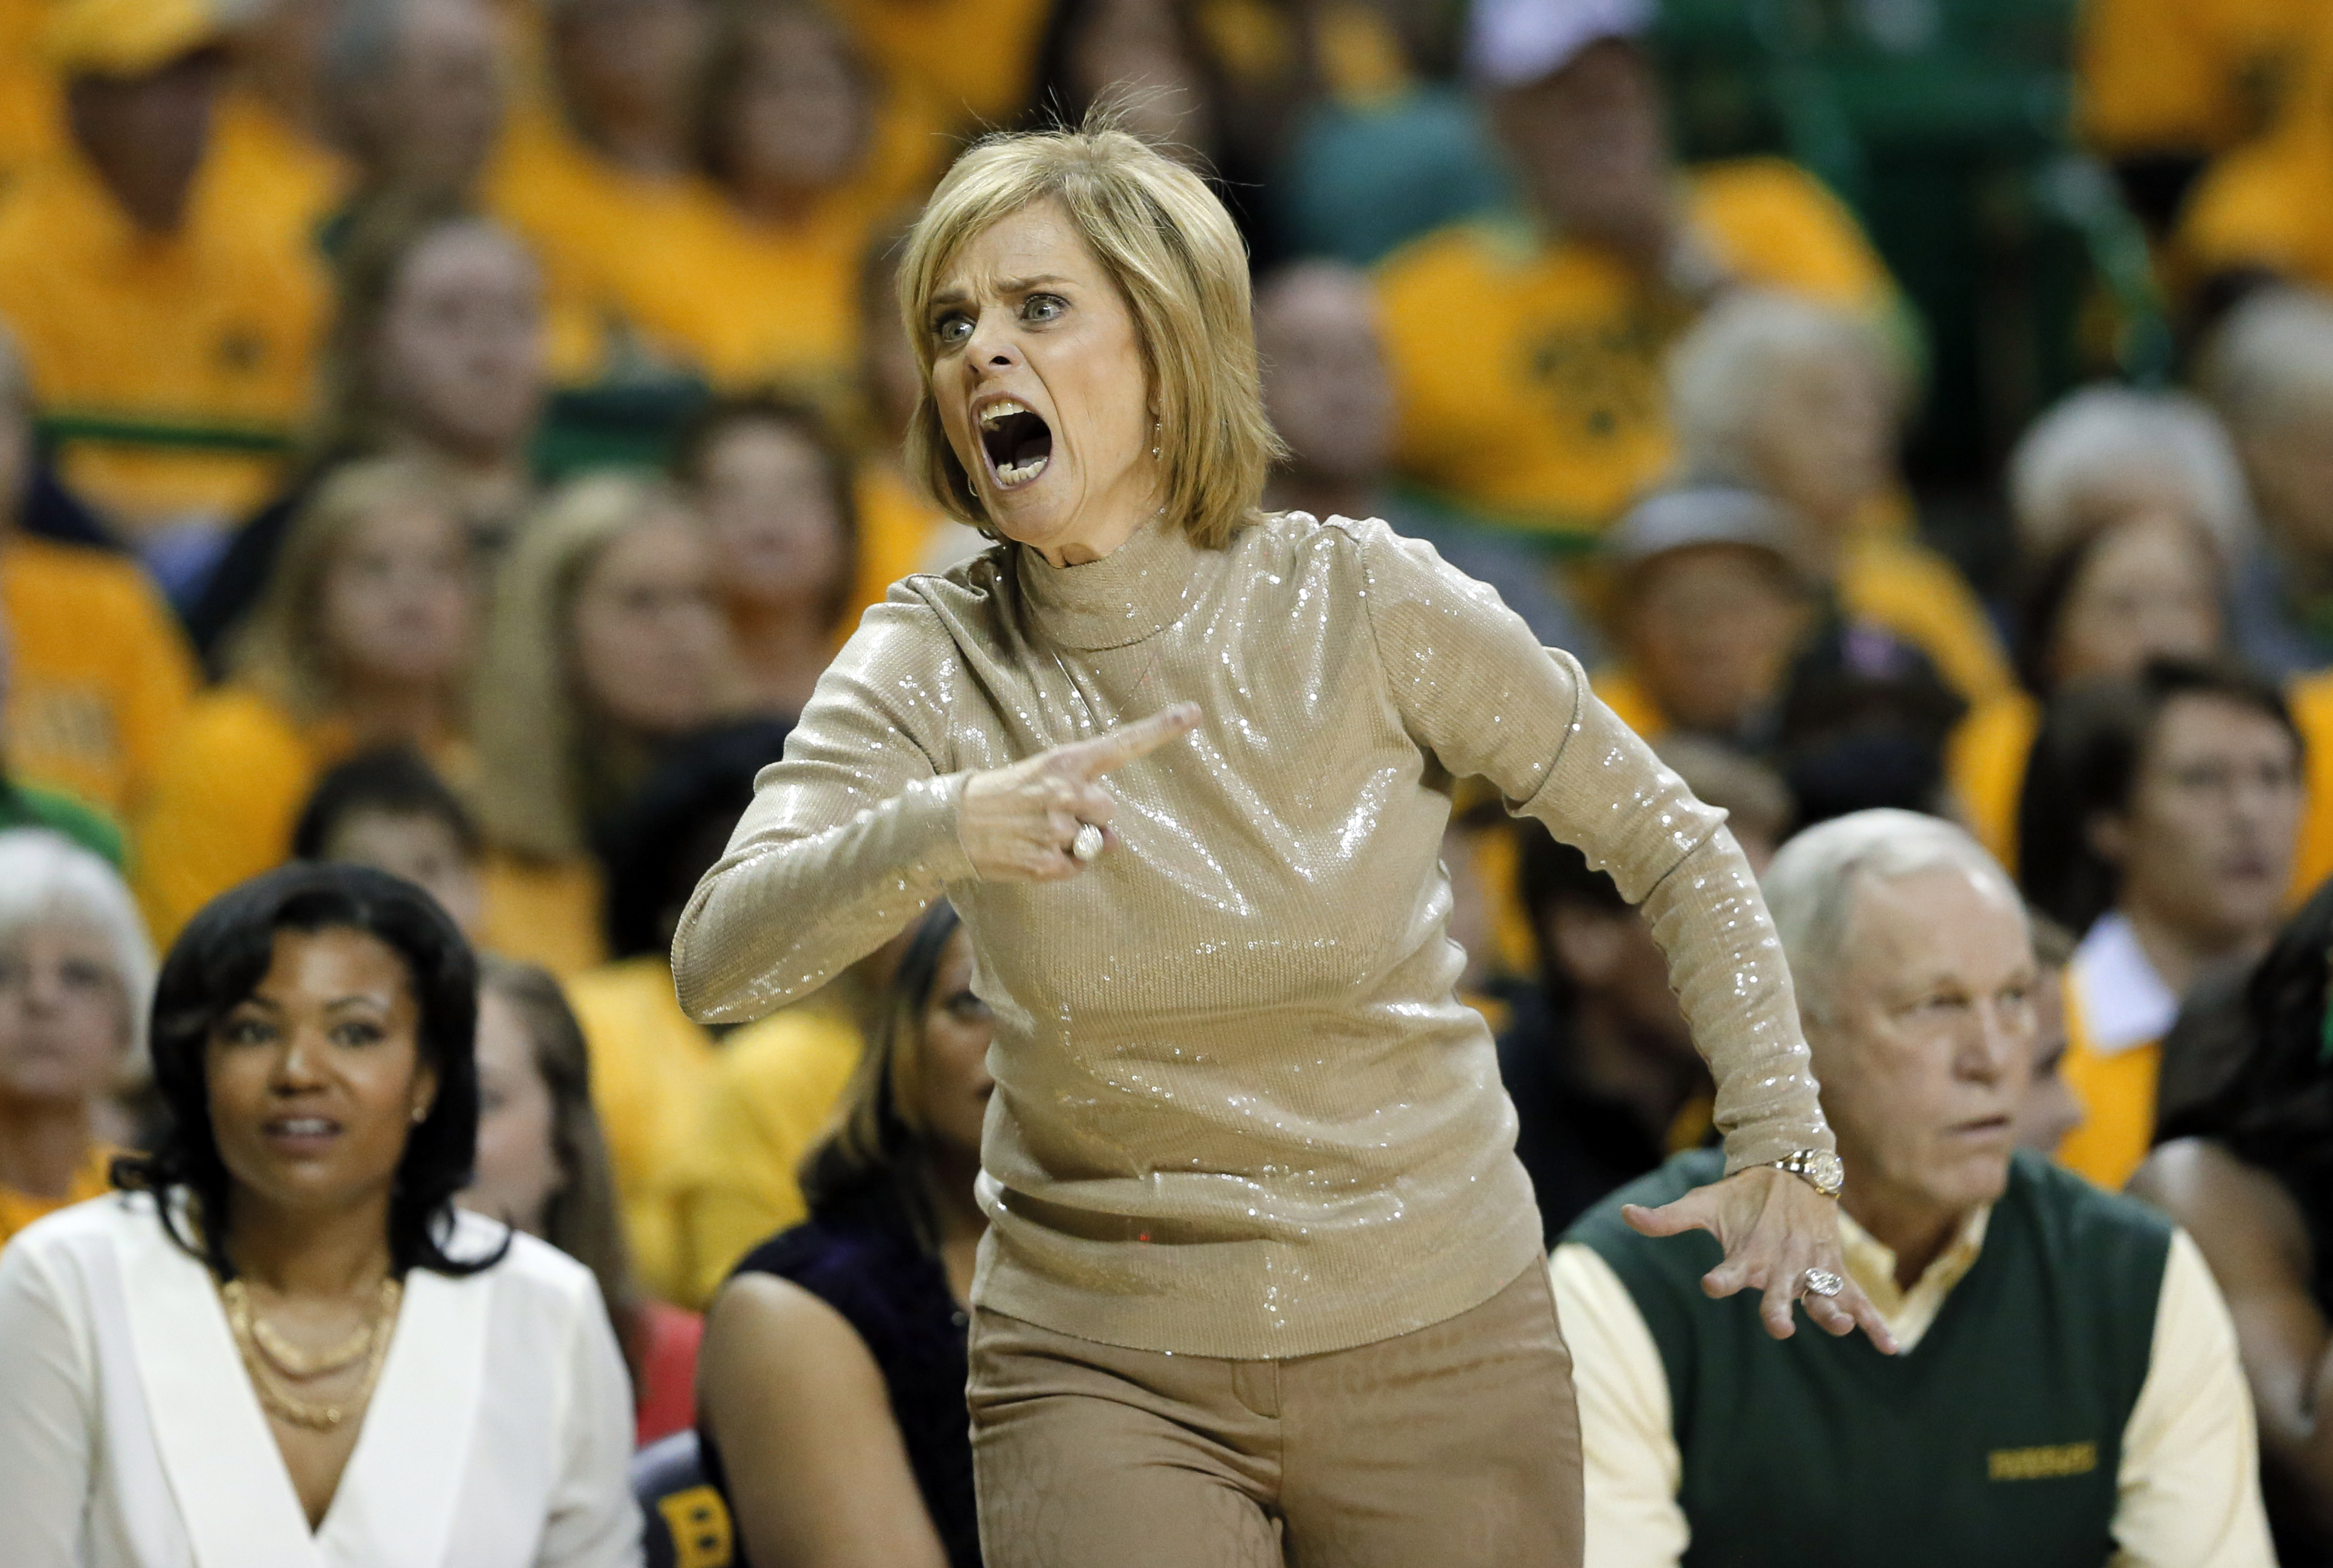 Baylor head coach Kim Mulkey looks for a foul call against Texas in the first half of an NCAA college basketball game, Monday, Feb. 29, 2016, in Waco, Texas. (AP Photo/Tony Gutierrez)